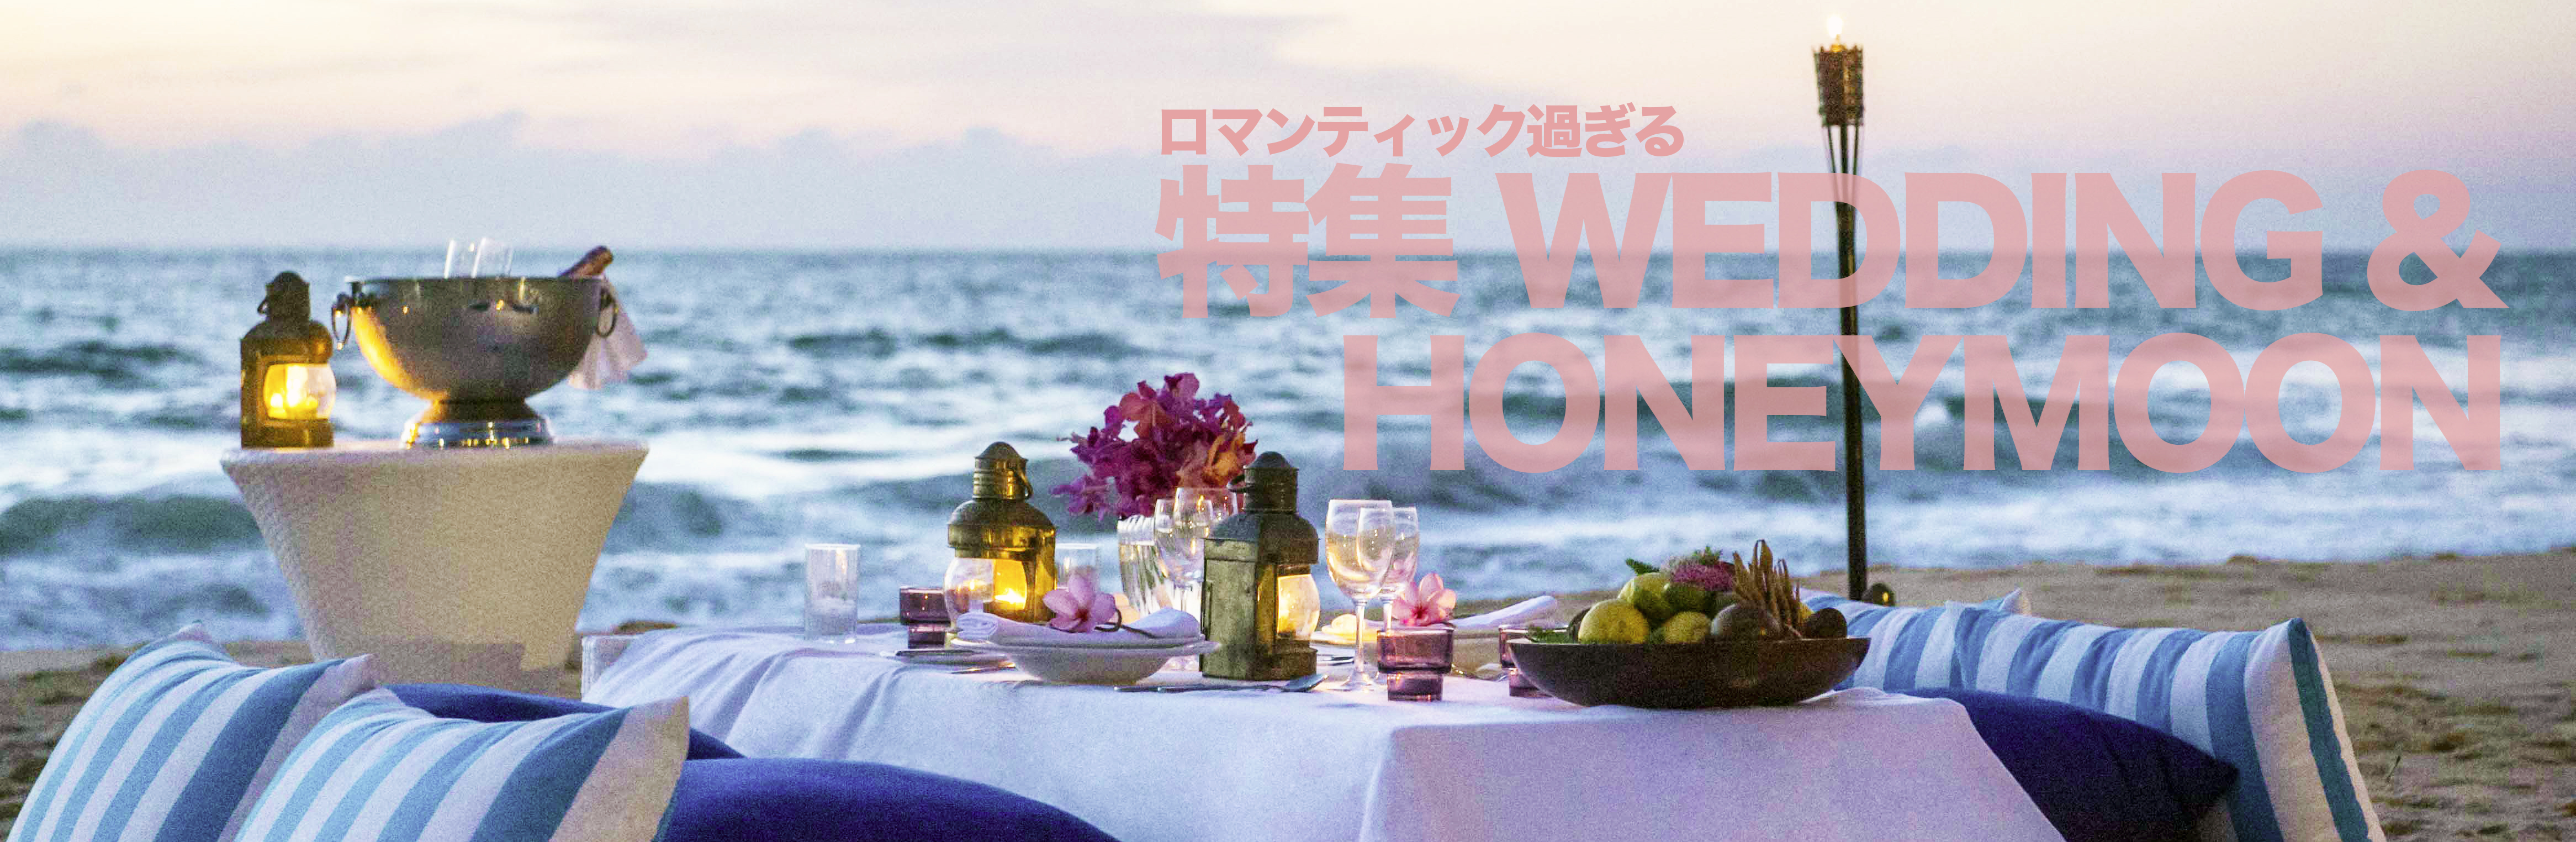 特集WEDDING&HONEYMOON